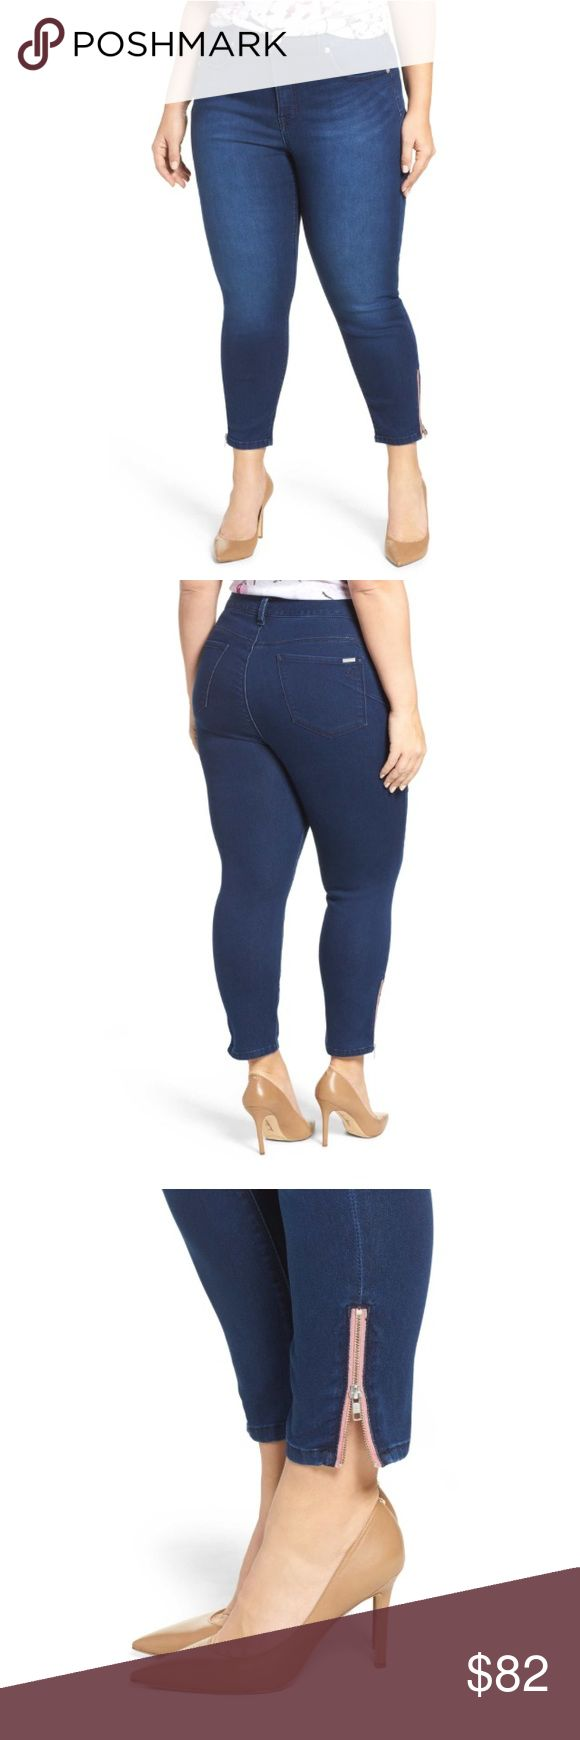 """Zip ankle skinny jeans size 18W Melissa McCarthy Ultra comfortable soft stretch Cropped skinny jeans detailed with exposed zippers at the hems are cut to flatter curves in stonewashed stretch denim. Slimming silhouette system: contoured waistband for full back coverage, hip slimming technology with tummy flattening panels 26"""" inseam; 12 1/2"""" leg opening; 12"""" front rise; 18 1/2"""" back rise (size 18W) 65% cotton, 33% polyester, 2% spandex Melissa McCarthy Seven7 Jeans Skinny"""